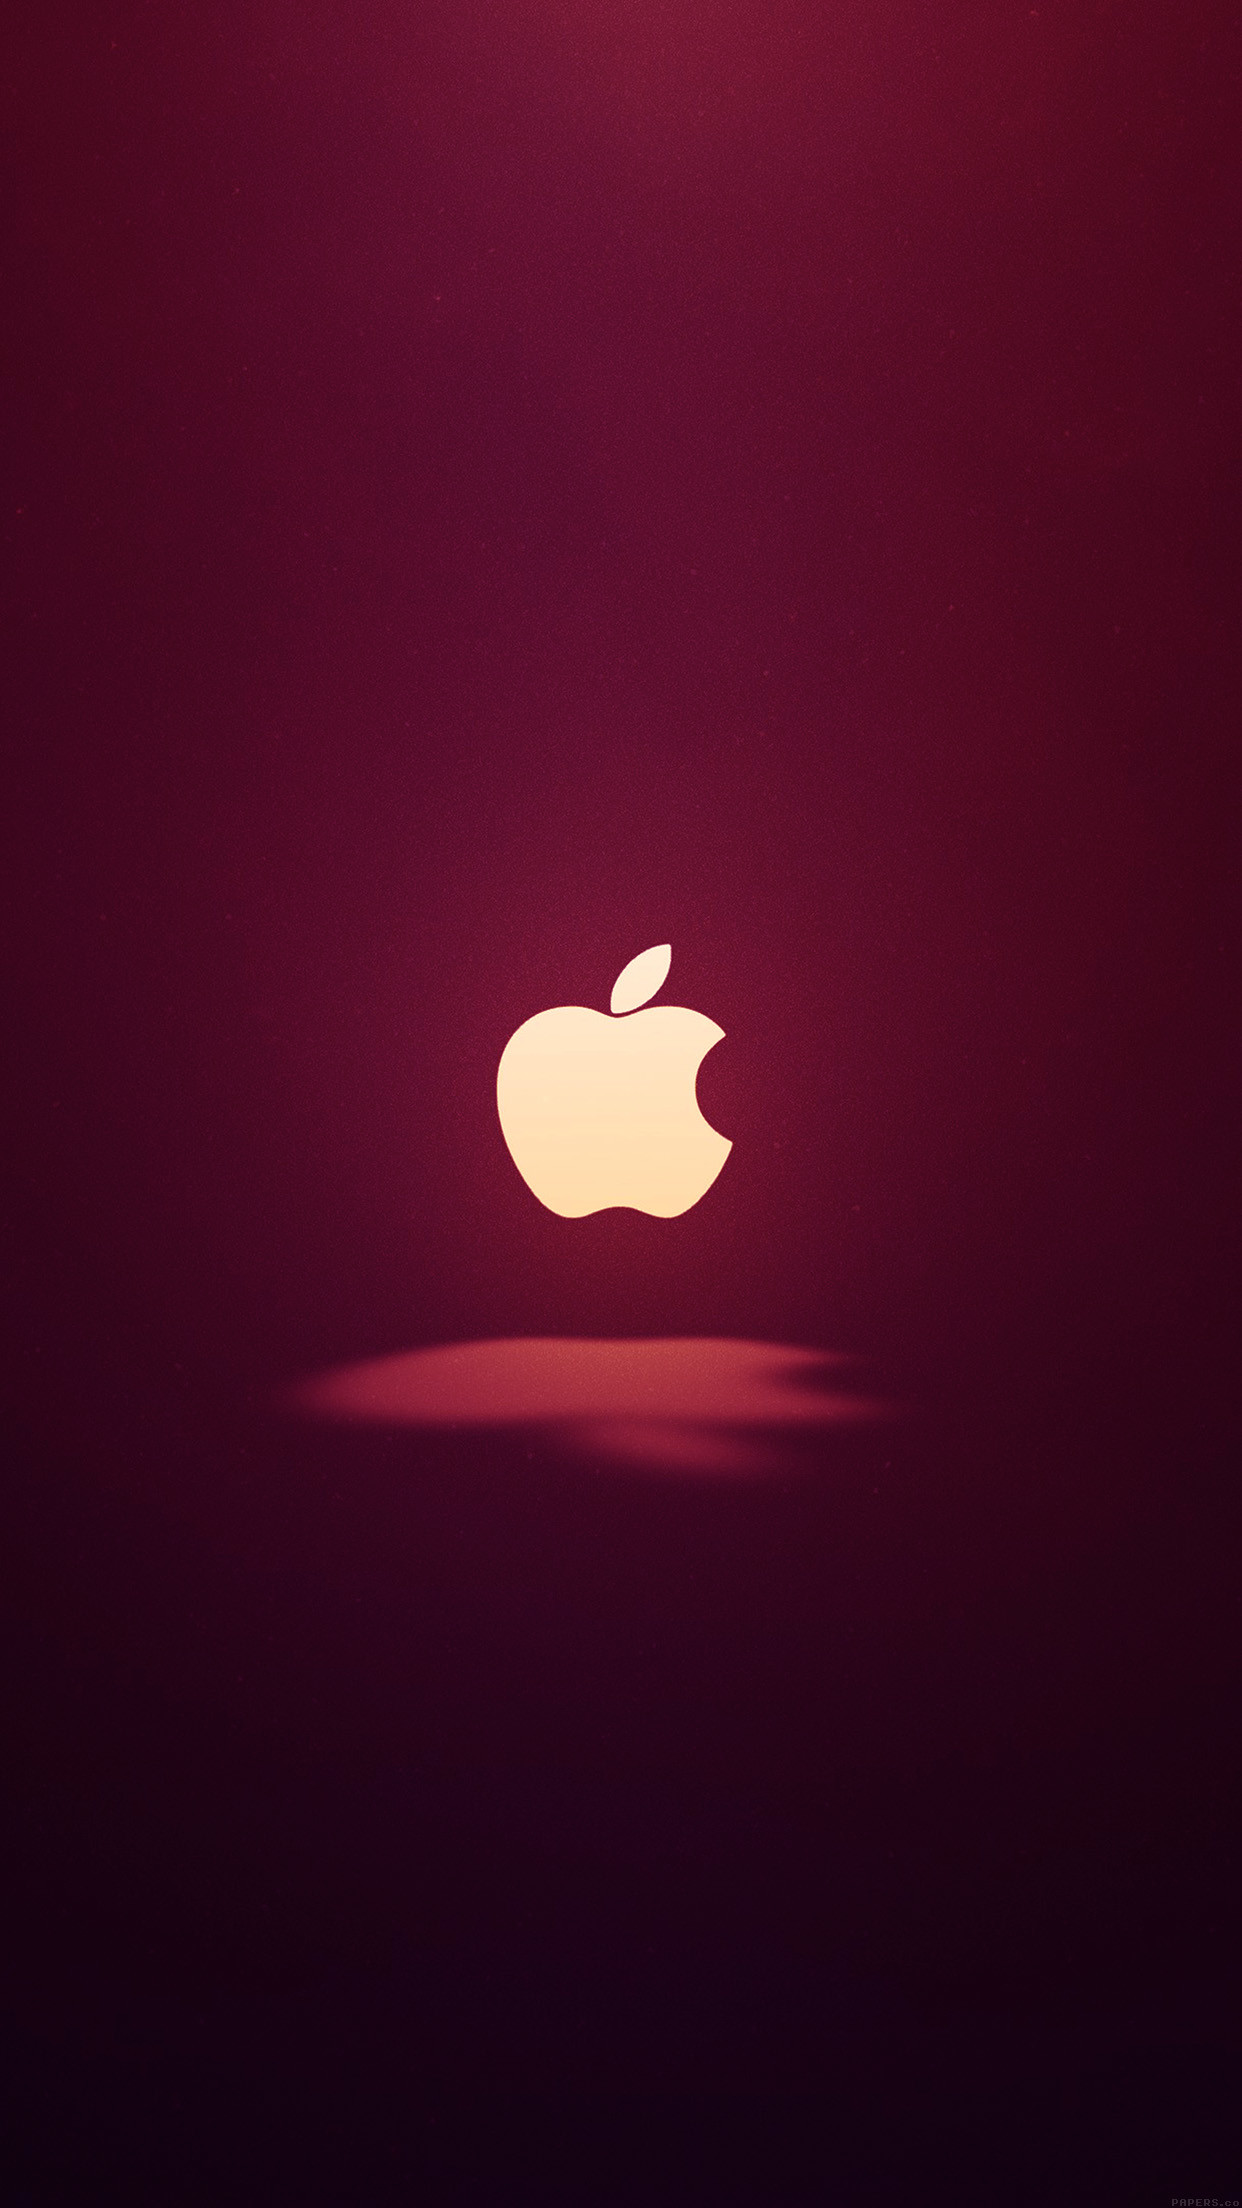 awesome apple-logo-love-mania-wine-red-iphone6-plus